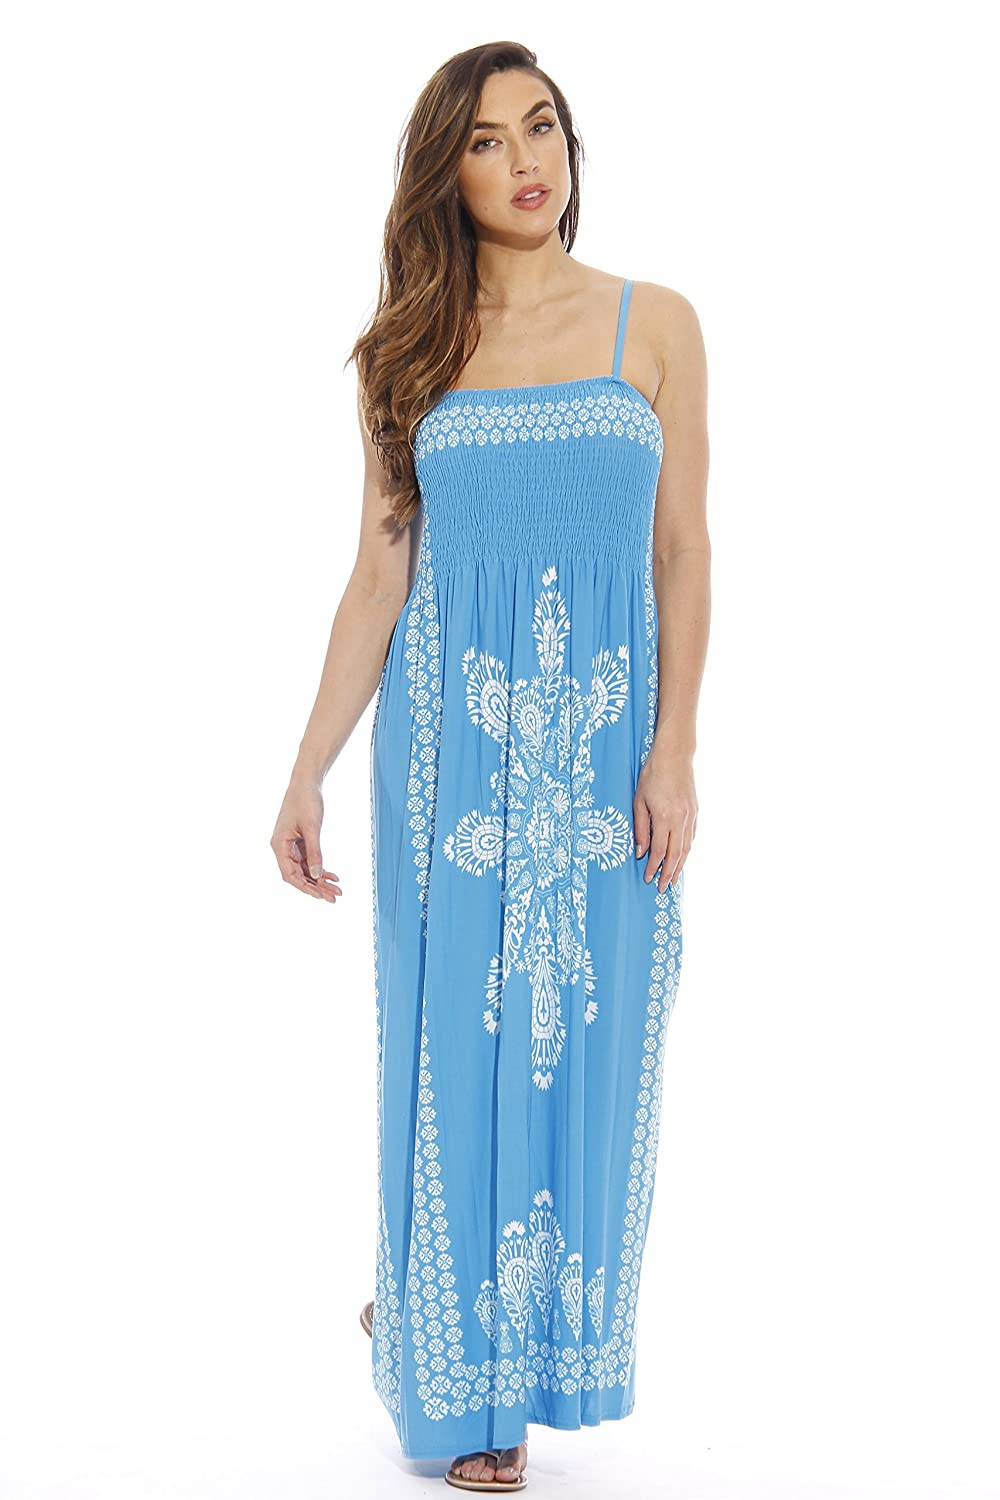 Just Love Summer Dresses for Women - Petite to Plus Size Fit - Sundresses